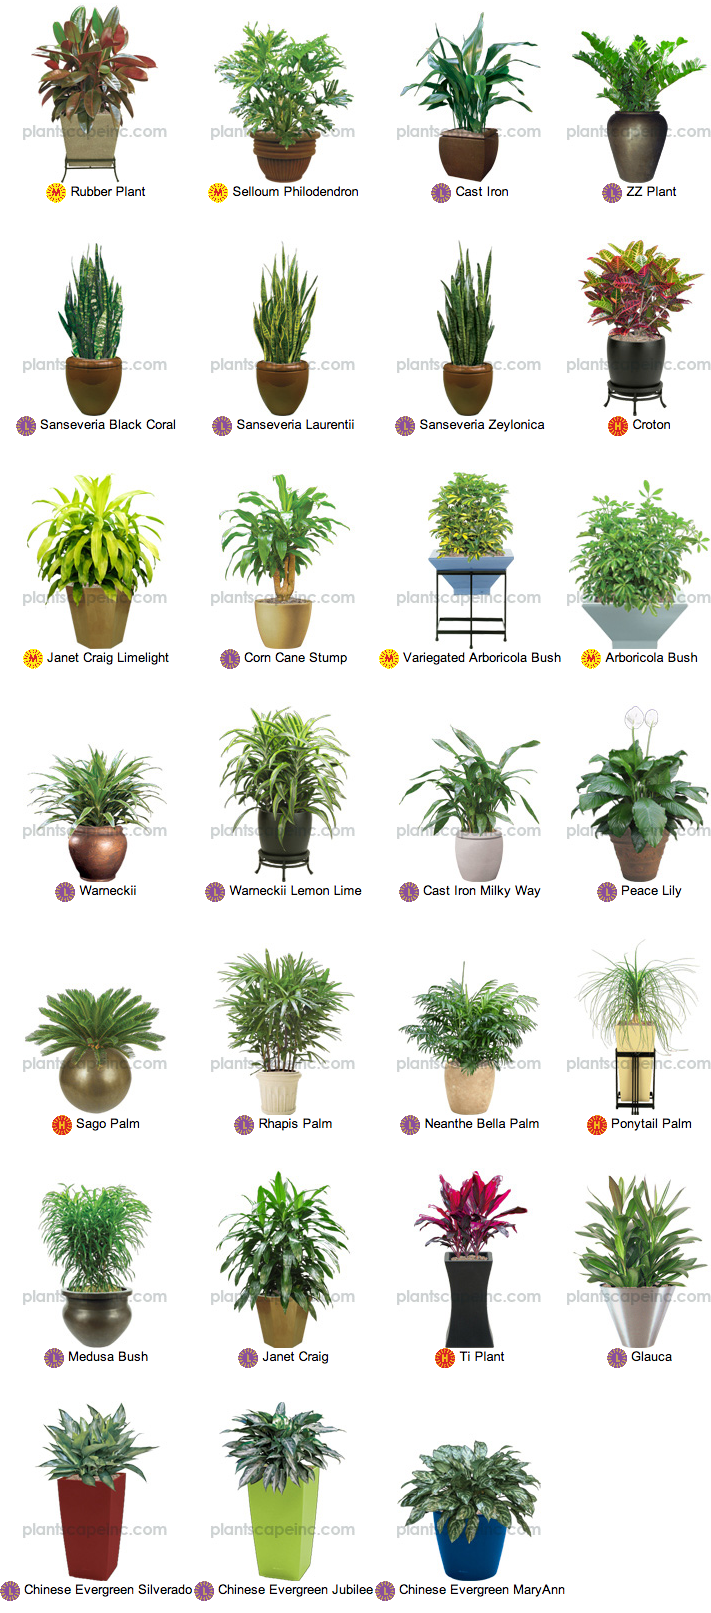 Small tropical plants for interior landscaping by for Planta tropical interior